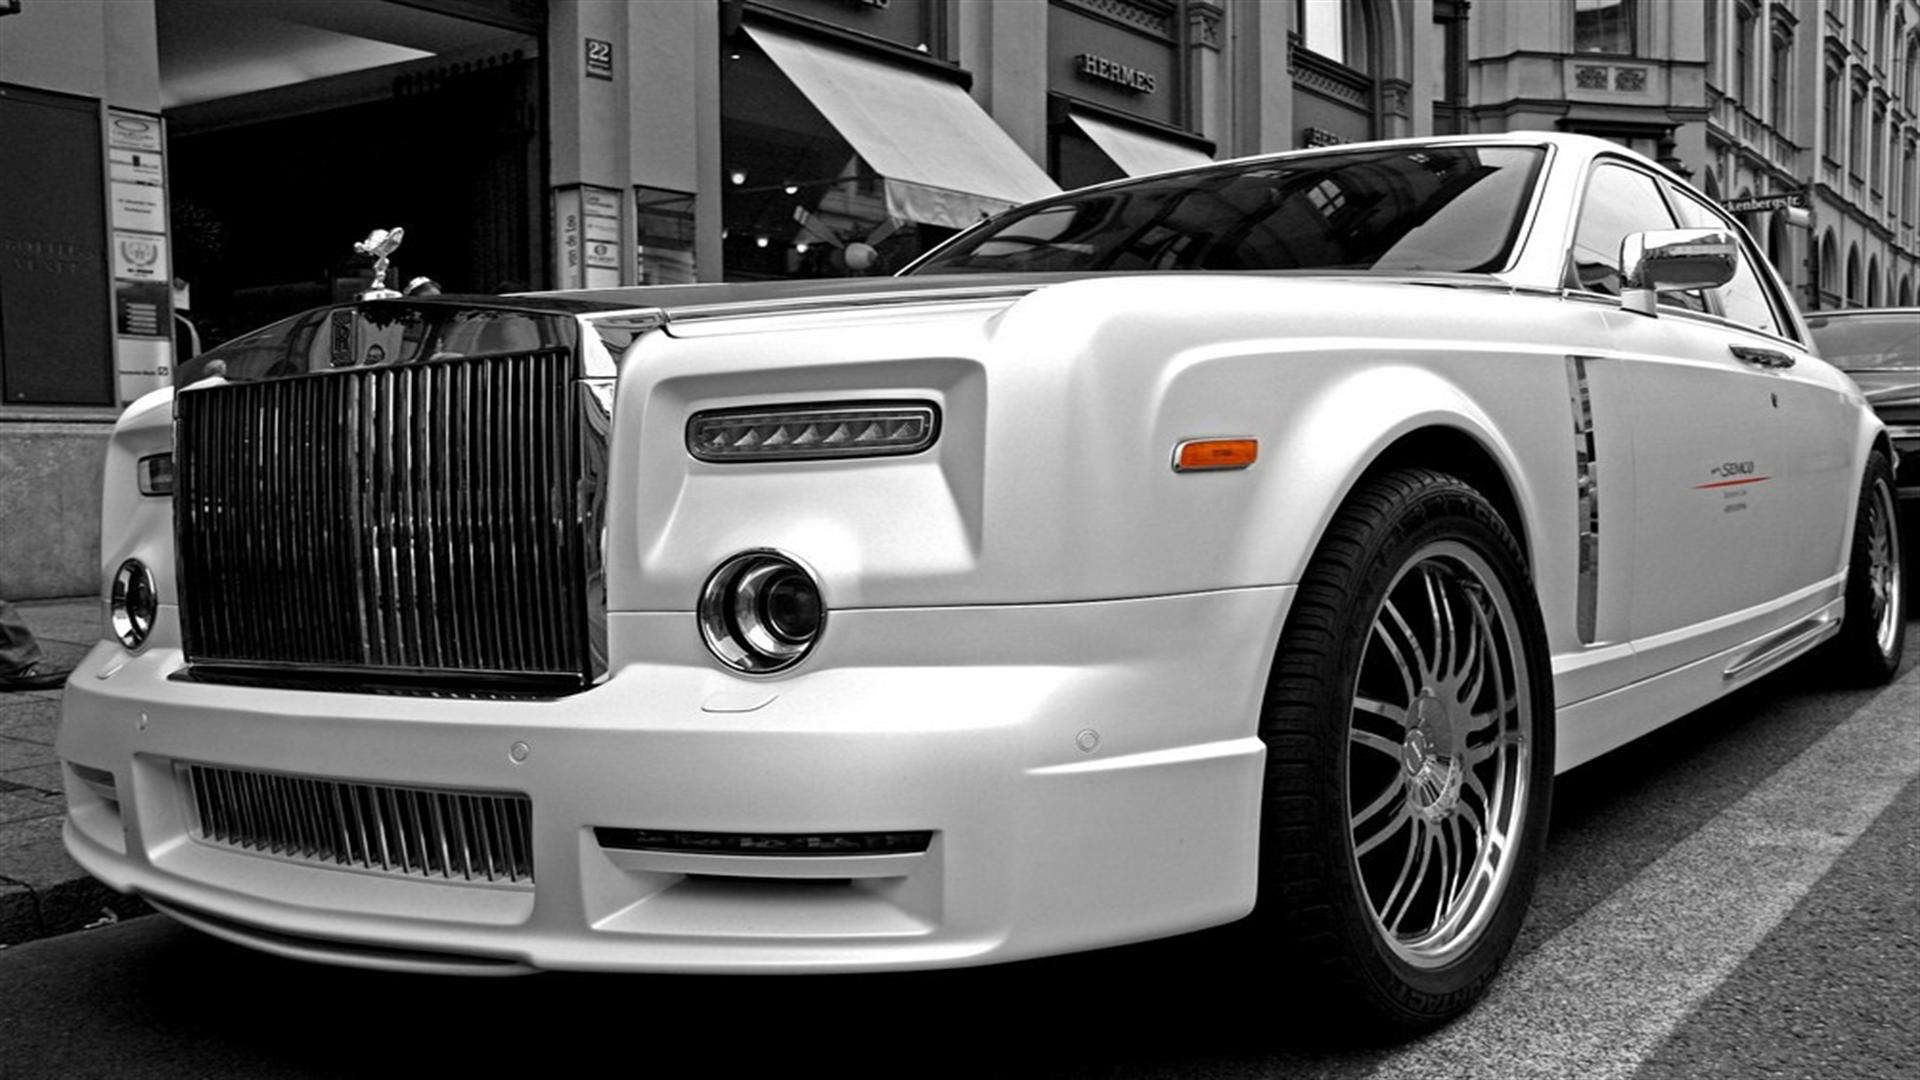 rolls-royce wallpaper